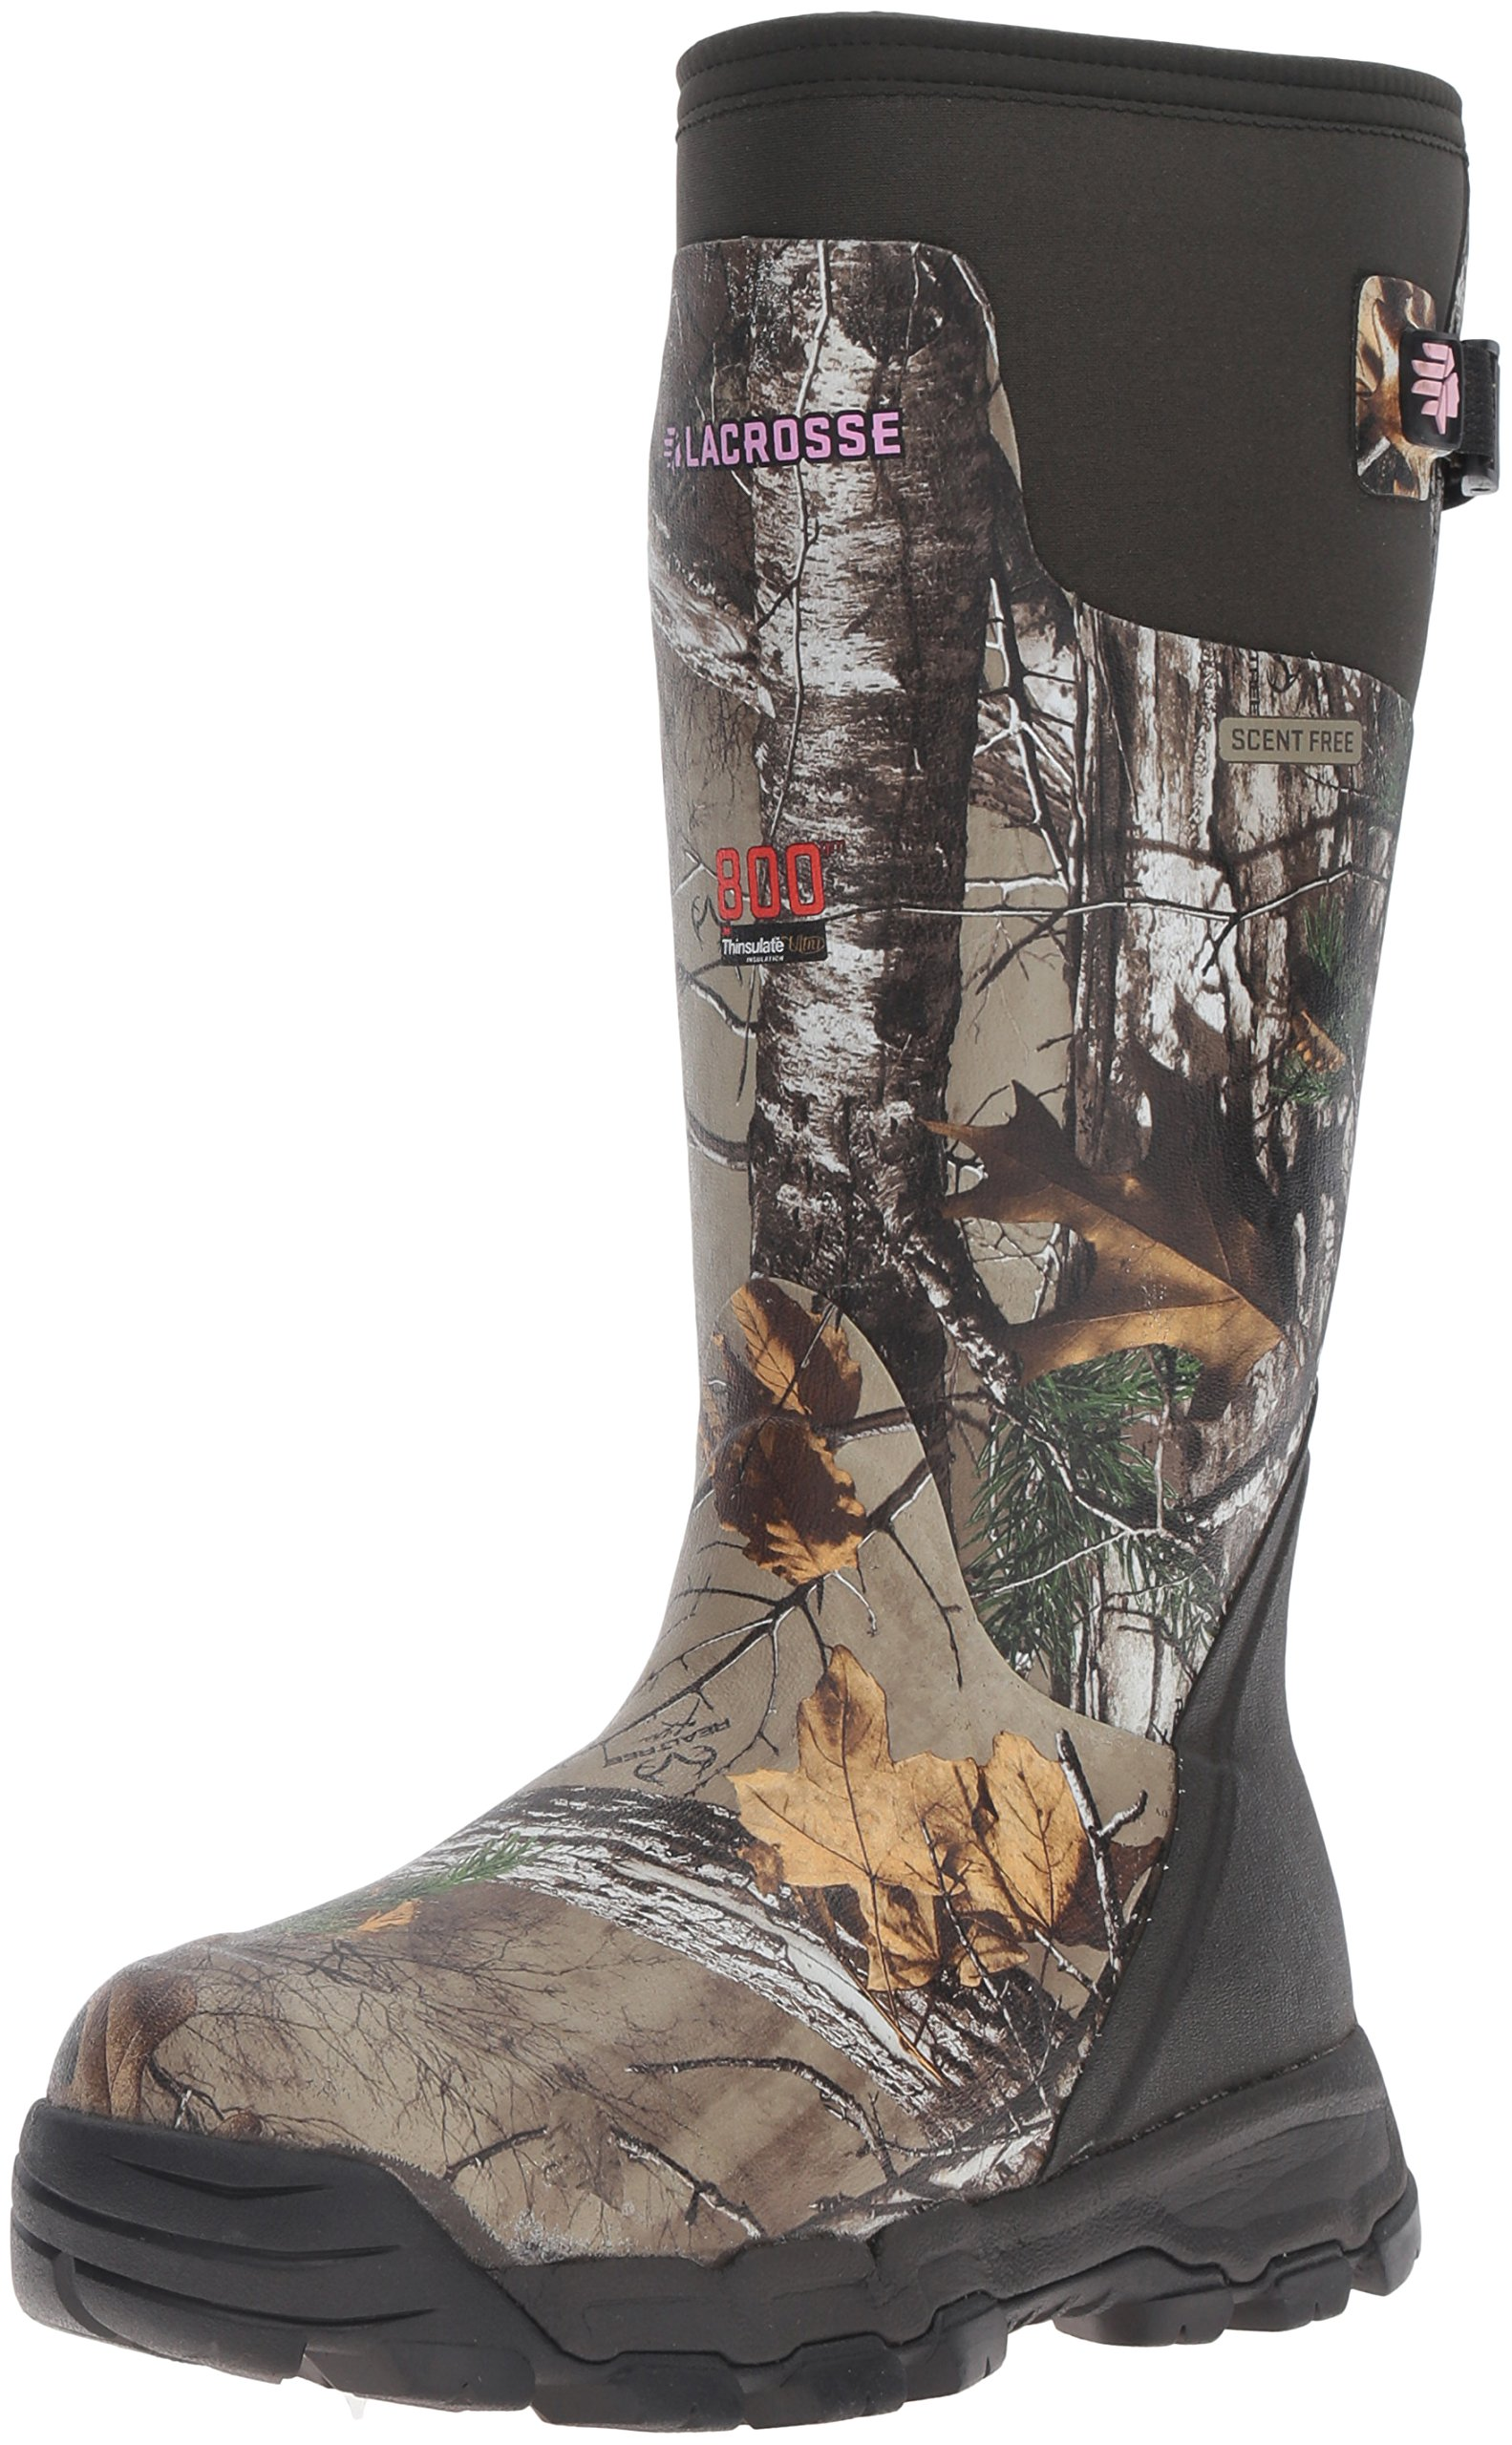 Lacrosse Women's Alphaburly Pro 800G Hunting Shoes, Realtree Xtra, 9 M US